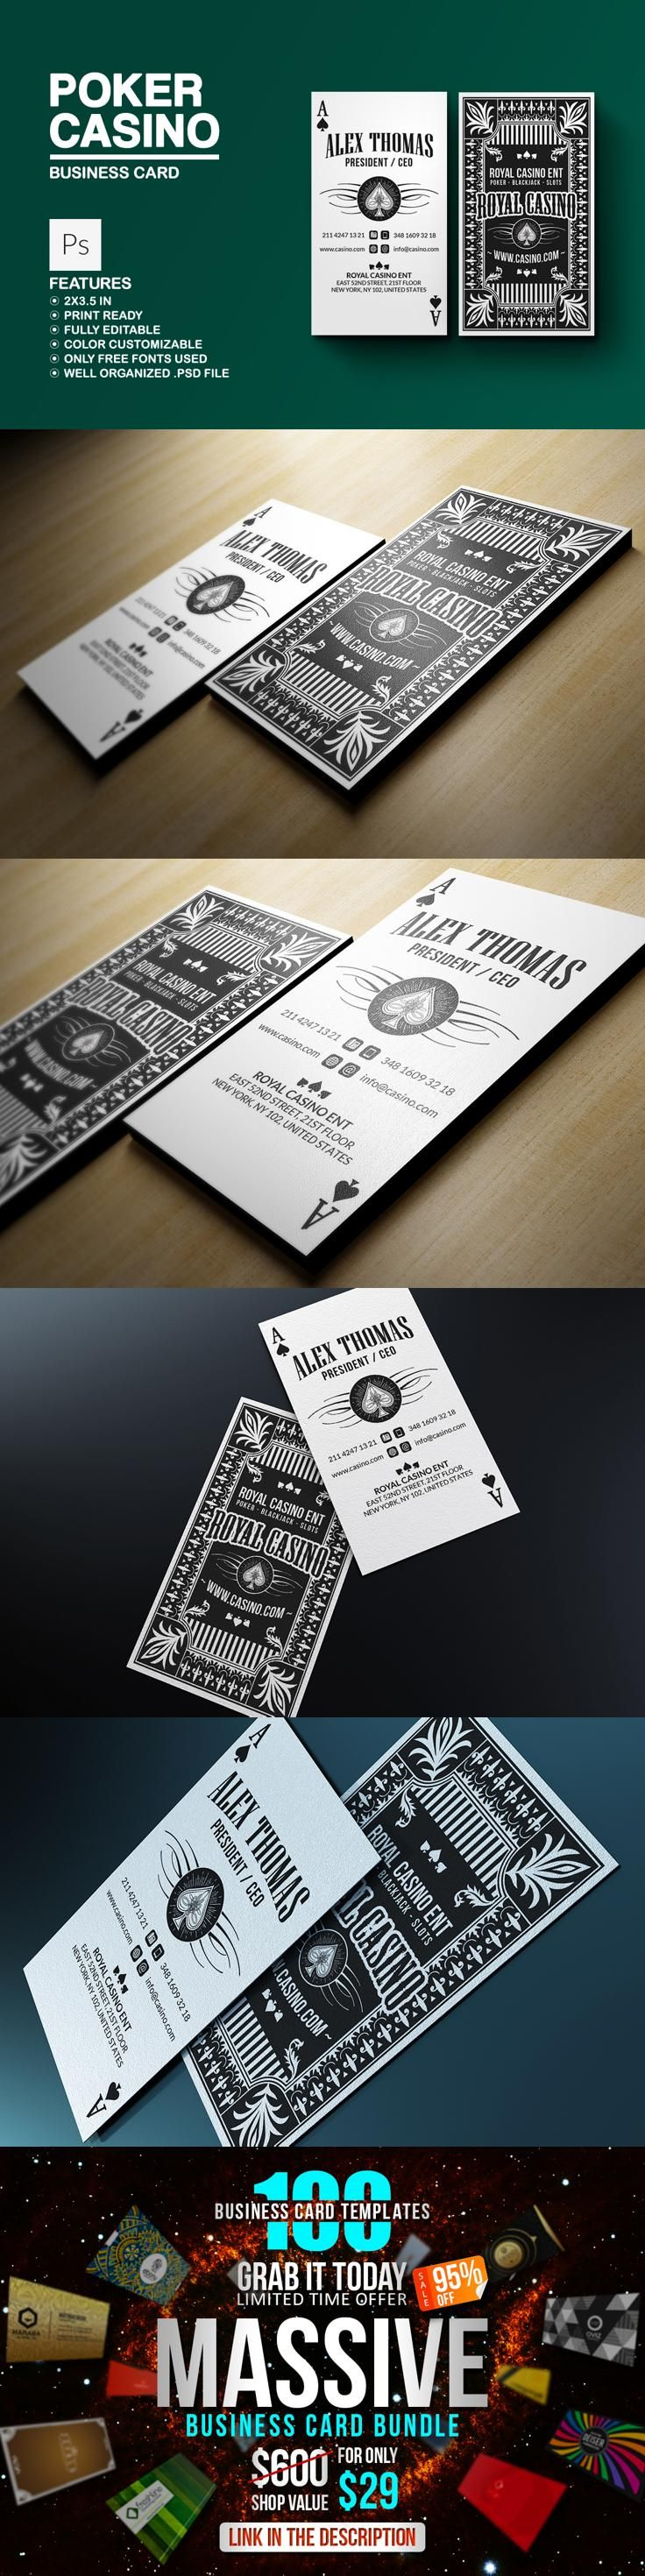 Printable Business Card Templates Create Free - oukas.info